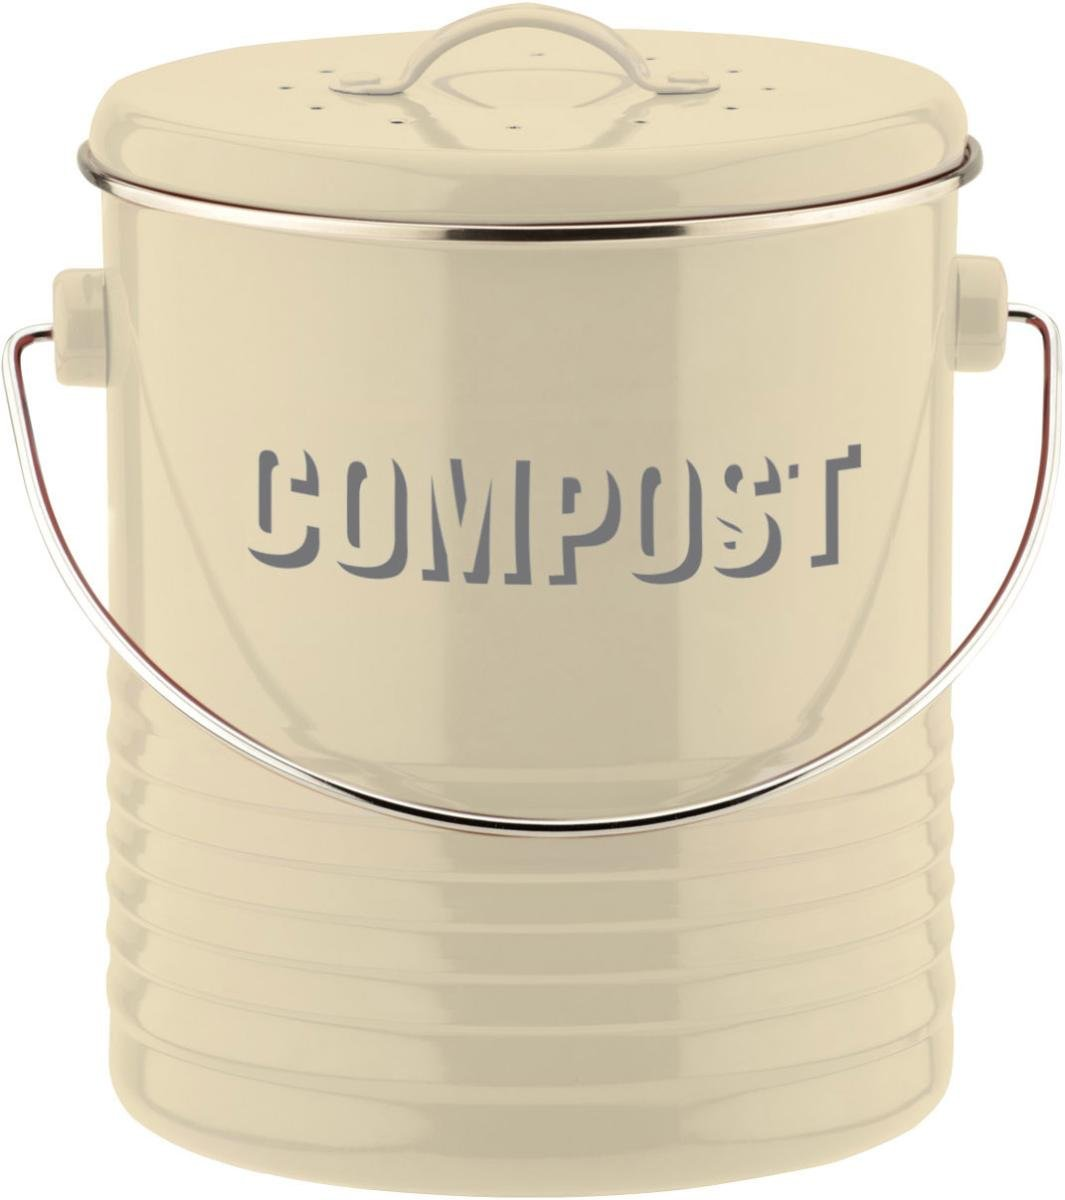 Typhoon Vintage Kitchen Cream Compost Caddy 1400.551